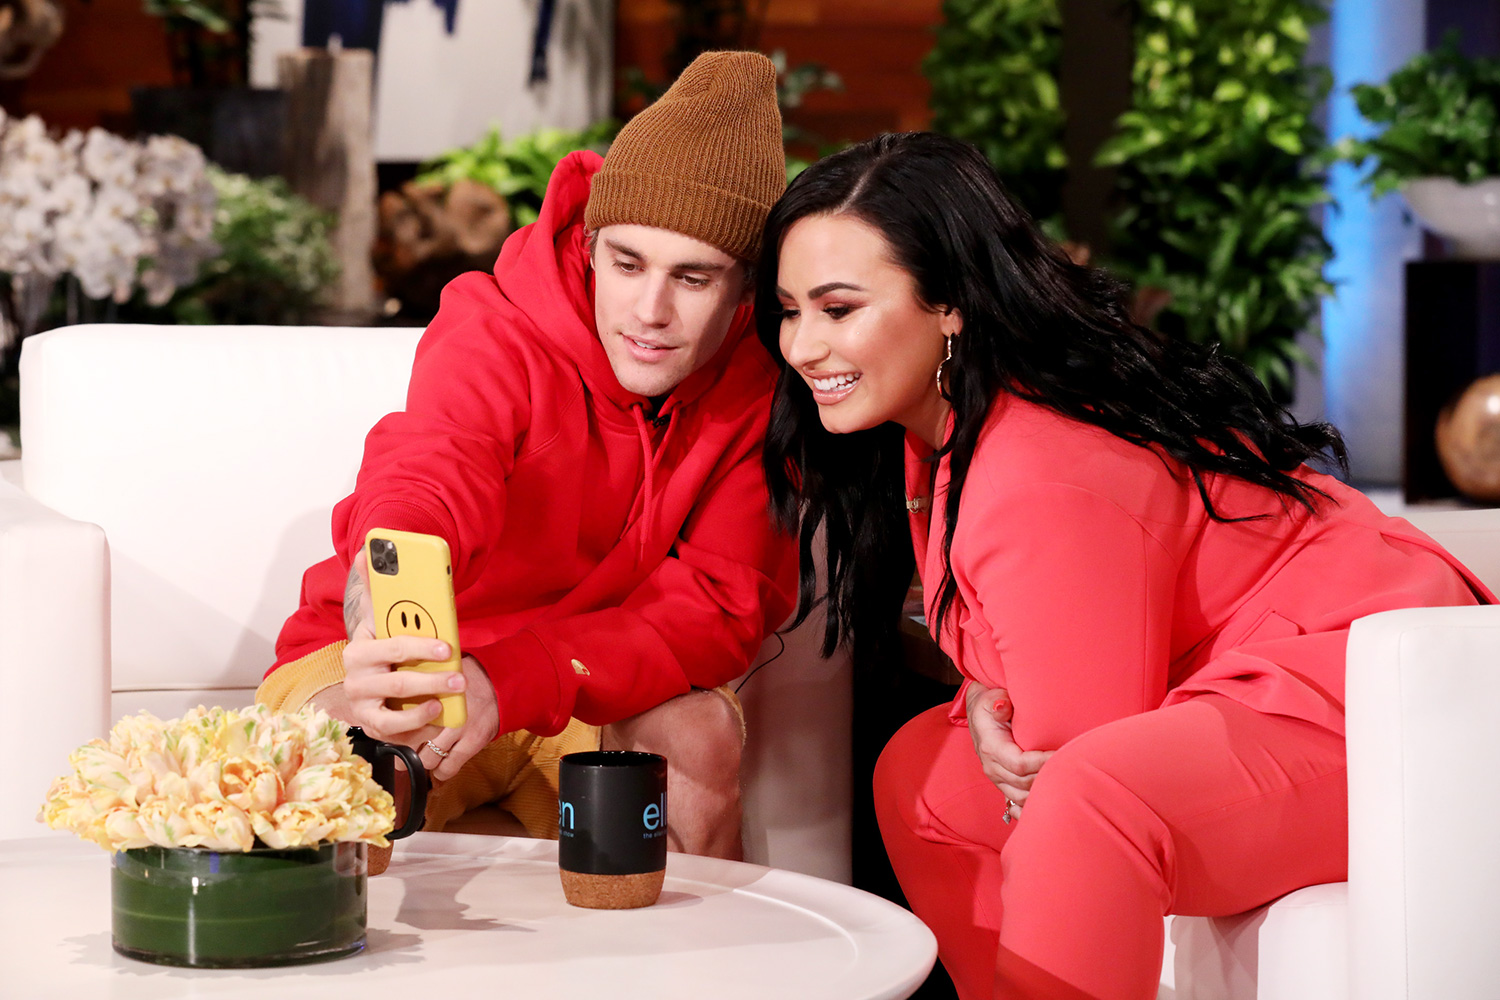 Grammy Award winner Justin Bieber sits down with Demi Lovato, and they chat about how they first met